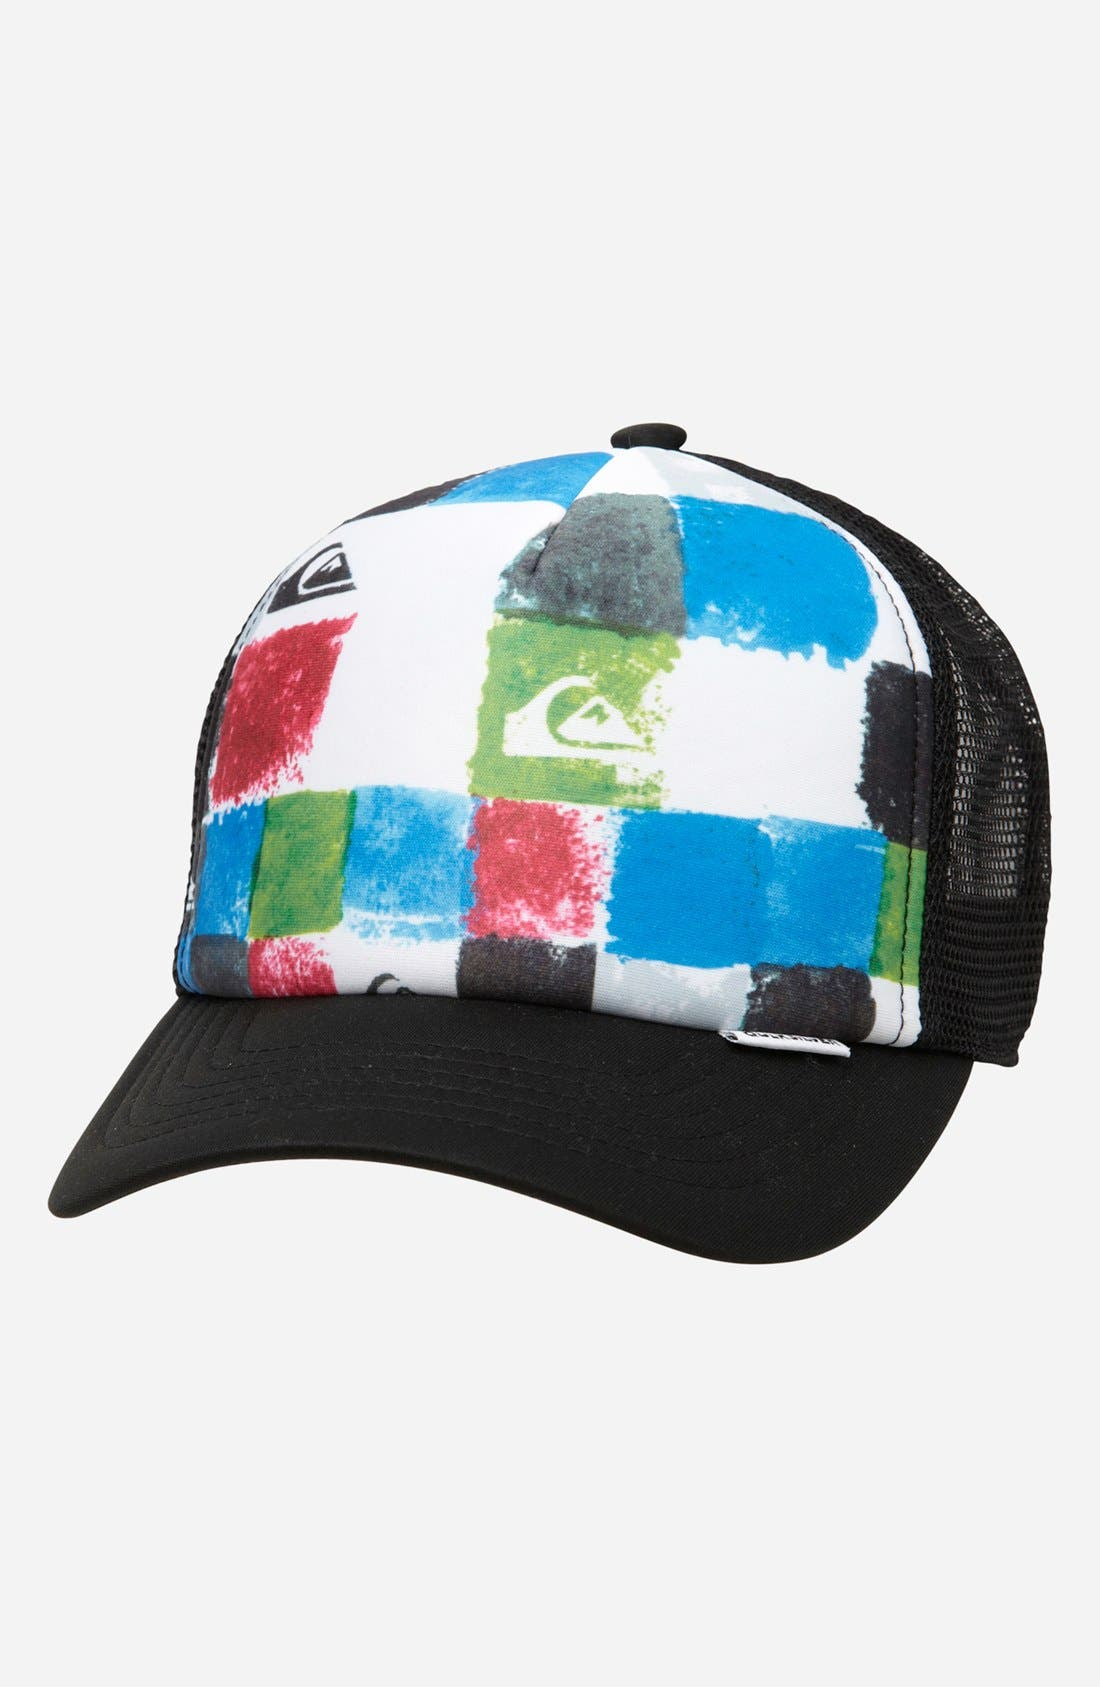 Alternate Image 1 Selected - Quiksilver 'Boards' Hat (Toddler)